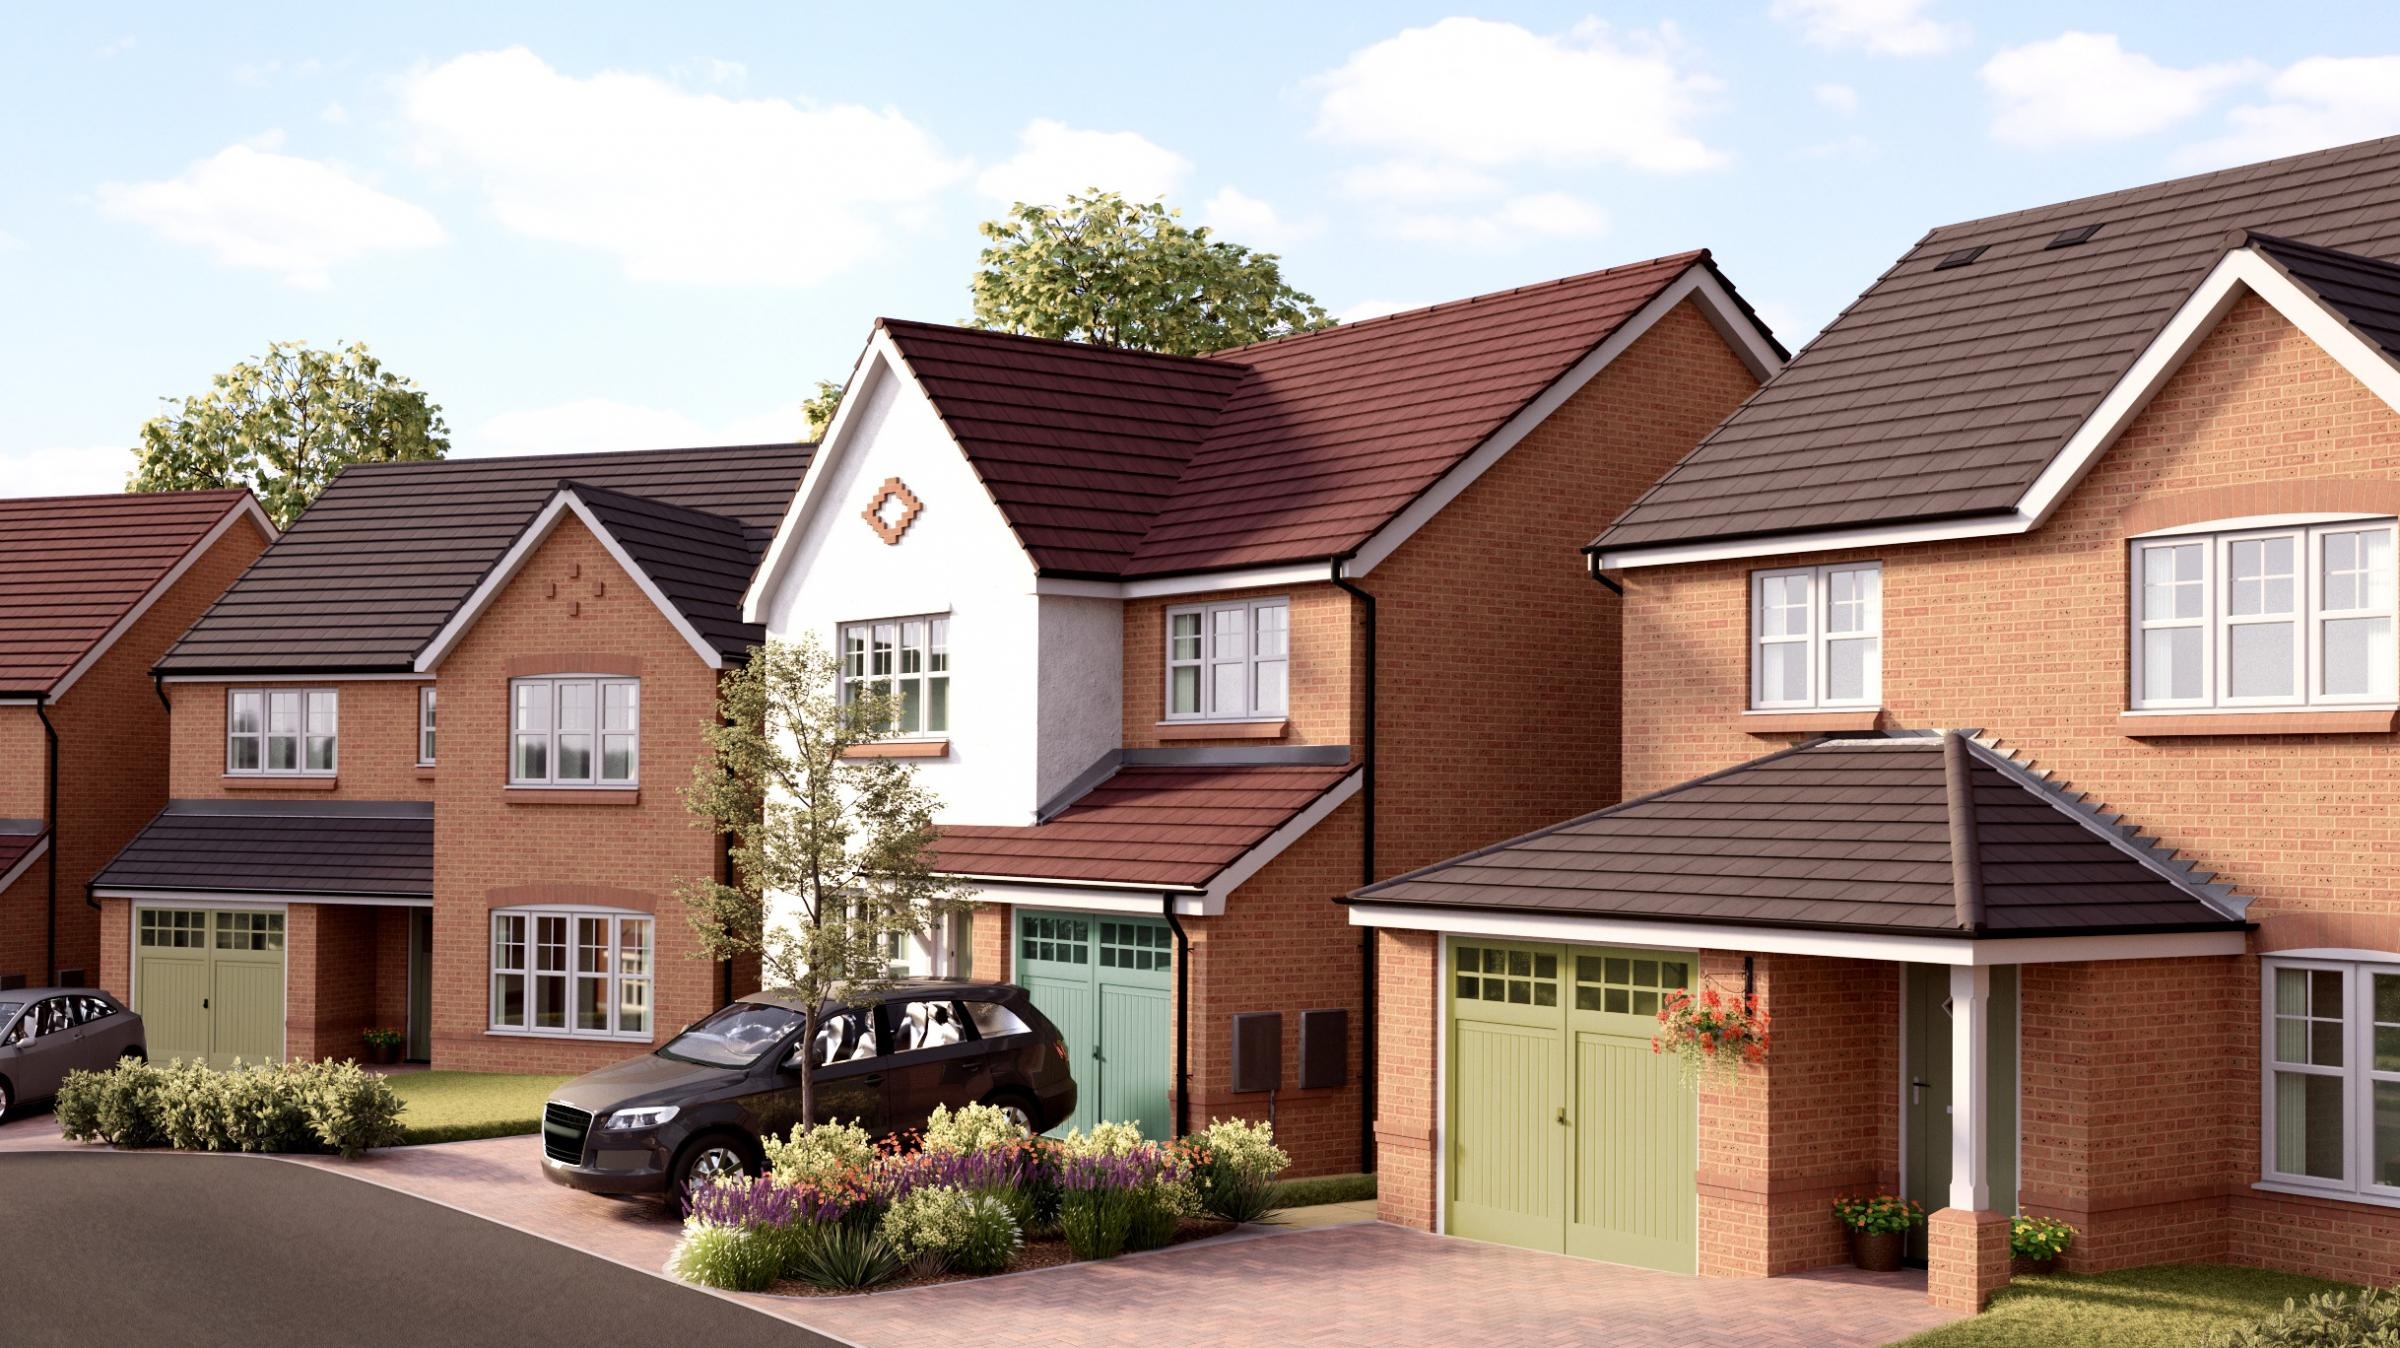 Work starts on building 59 new homes in Mold